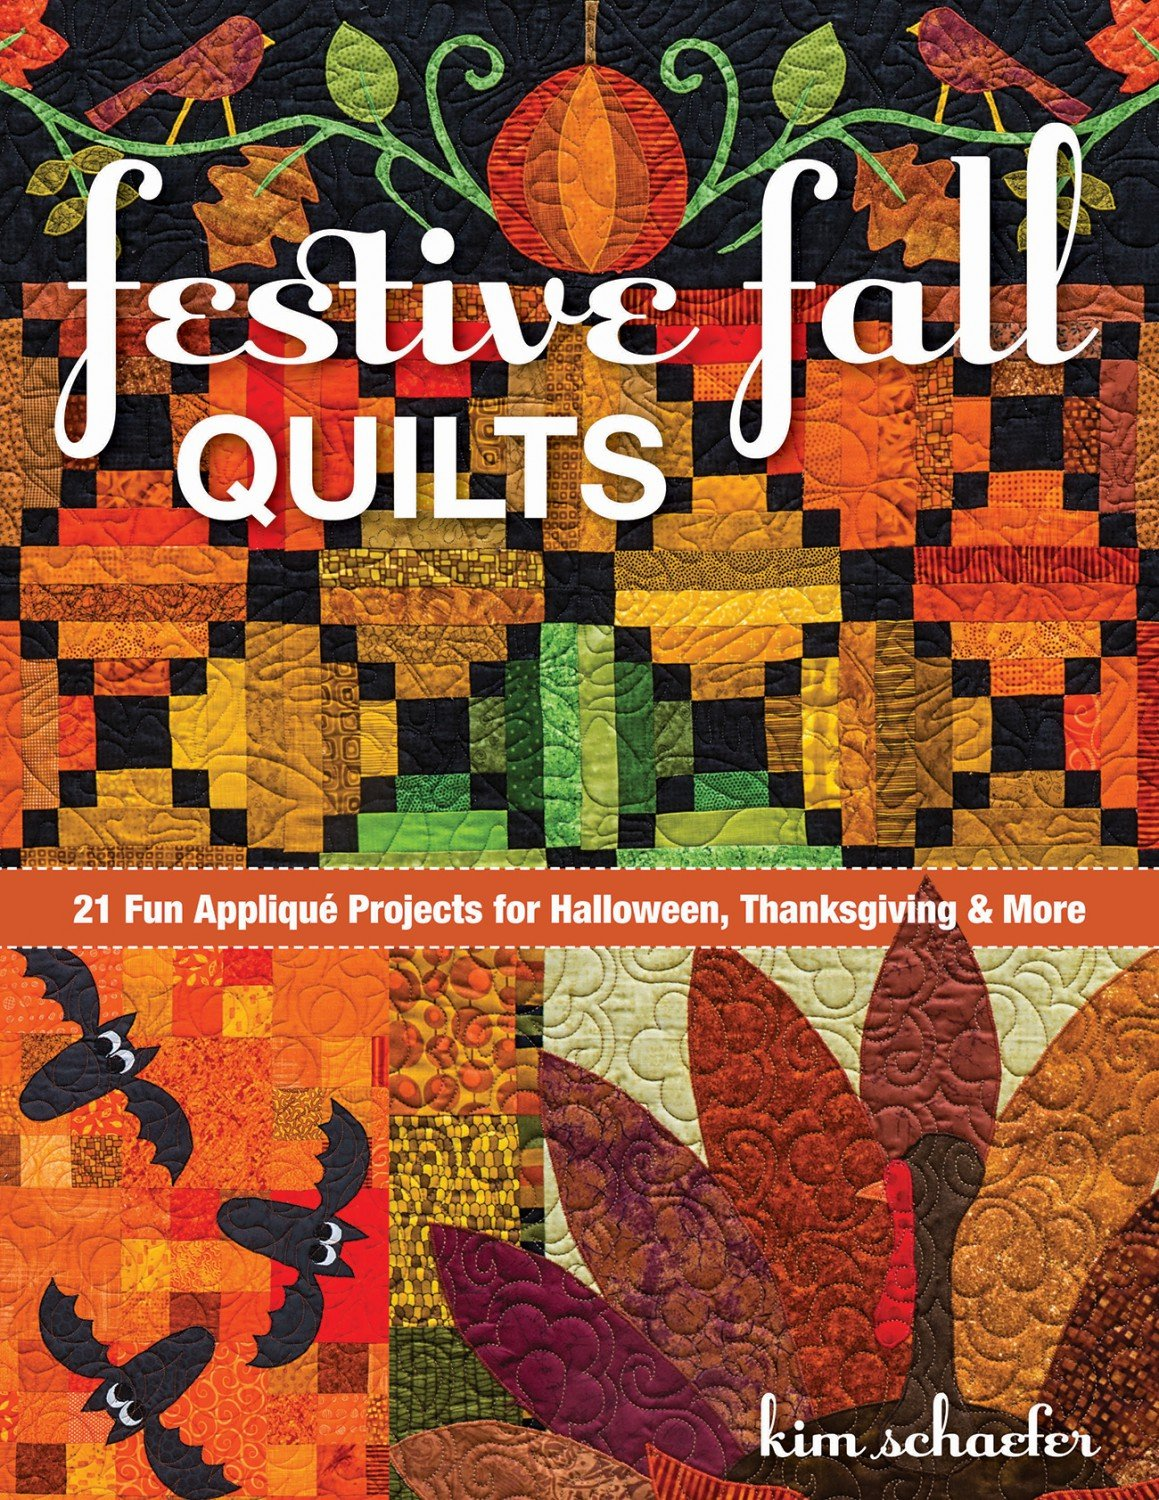 Festive Fall Quilts Soft Cover Quilt Book by Kim Schaefer